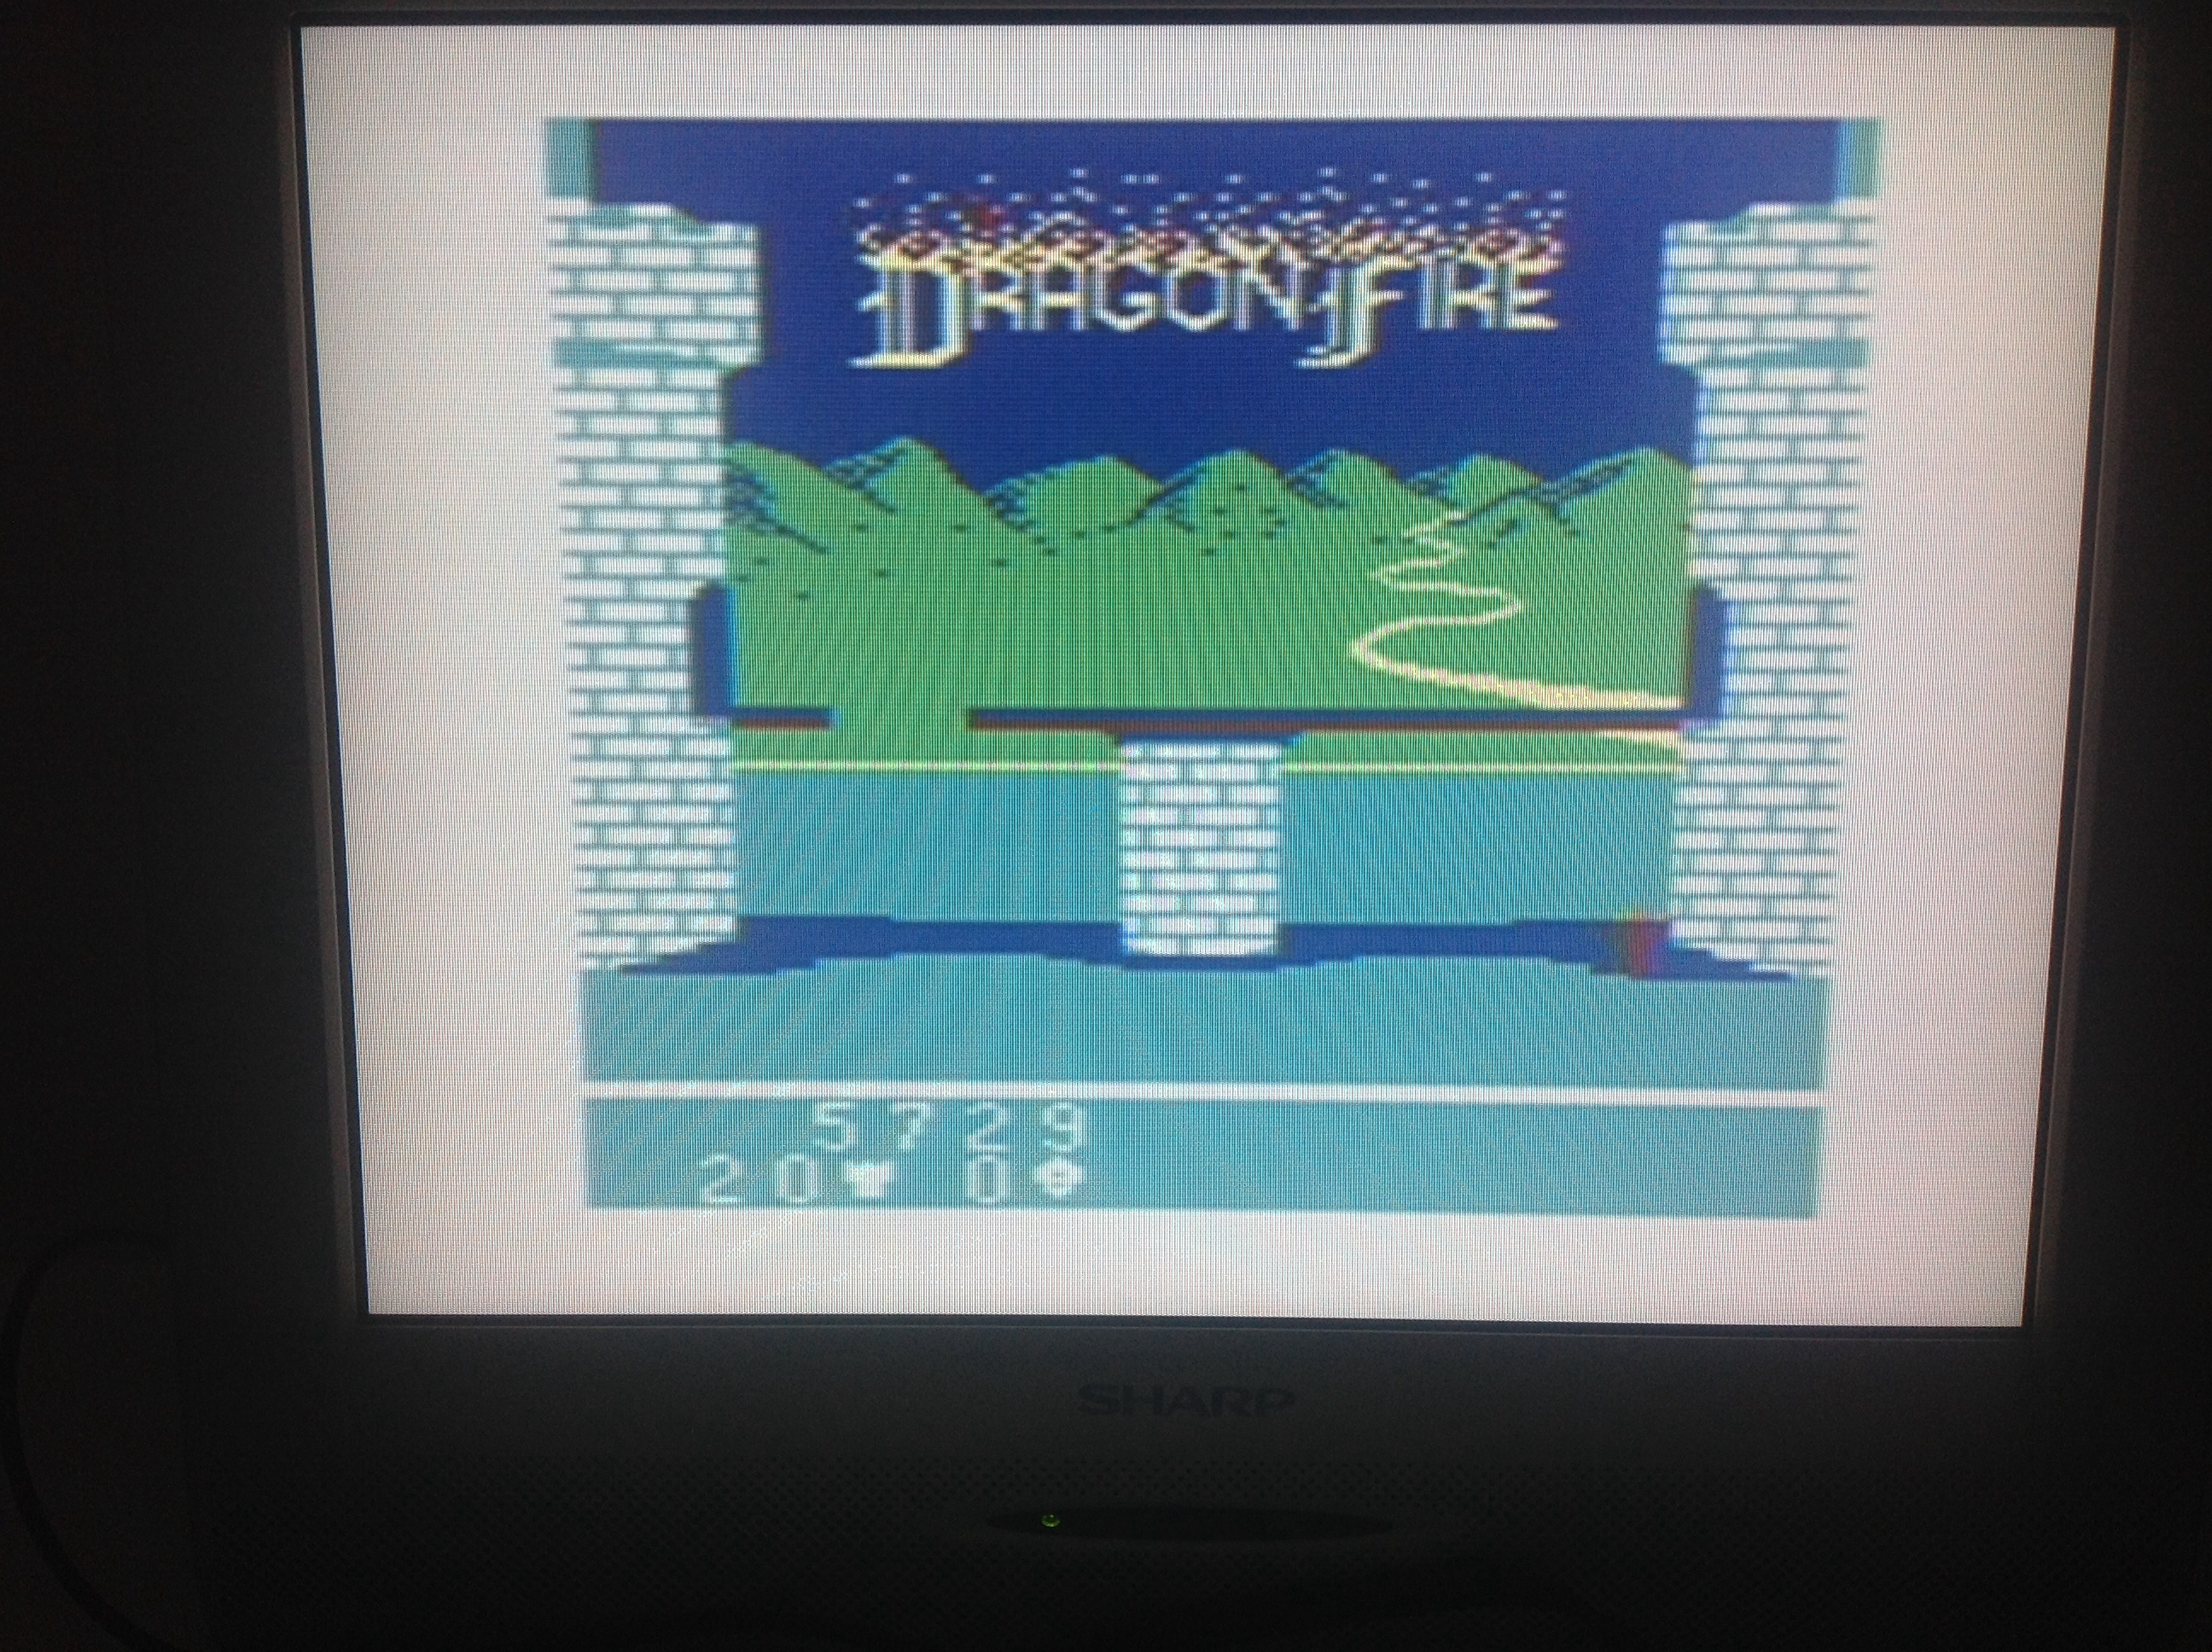 Dragonfire 5,729 points